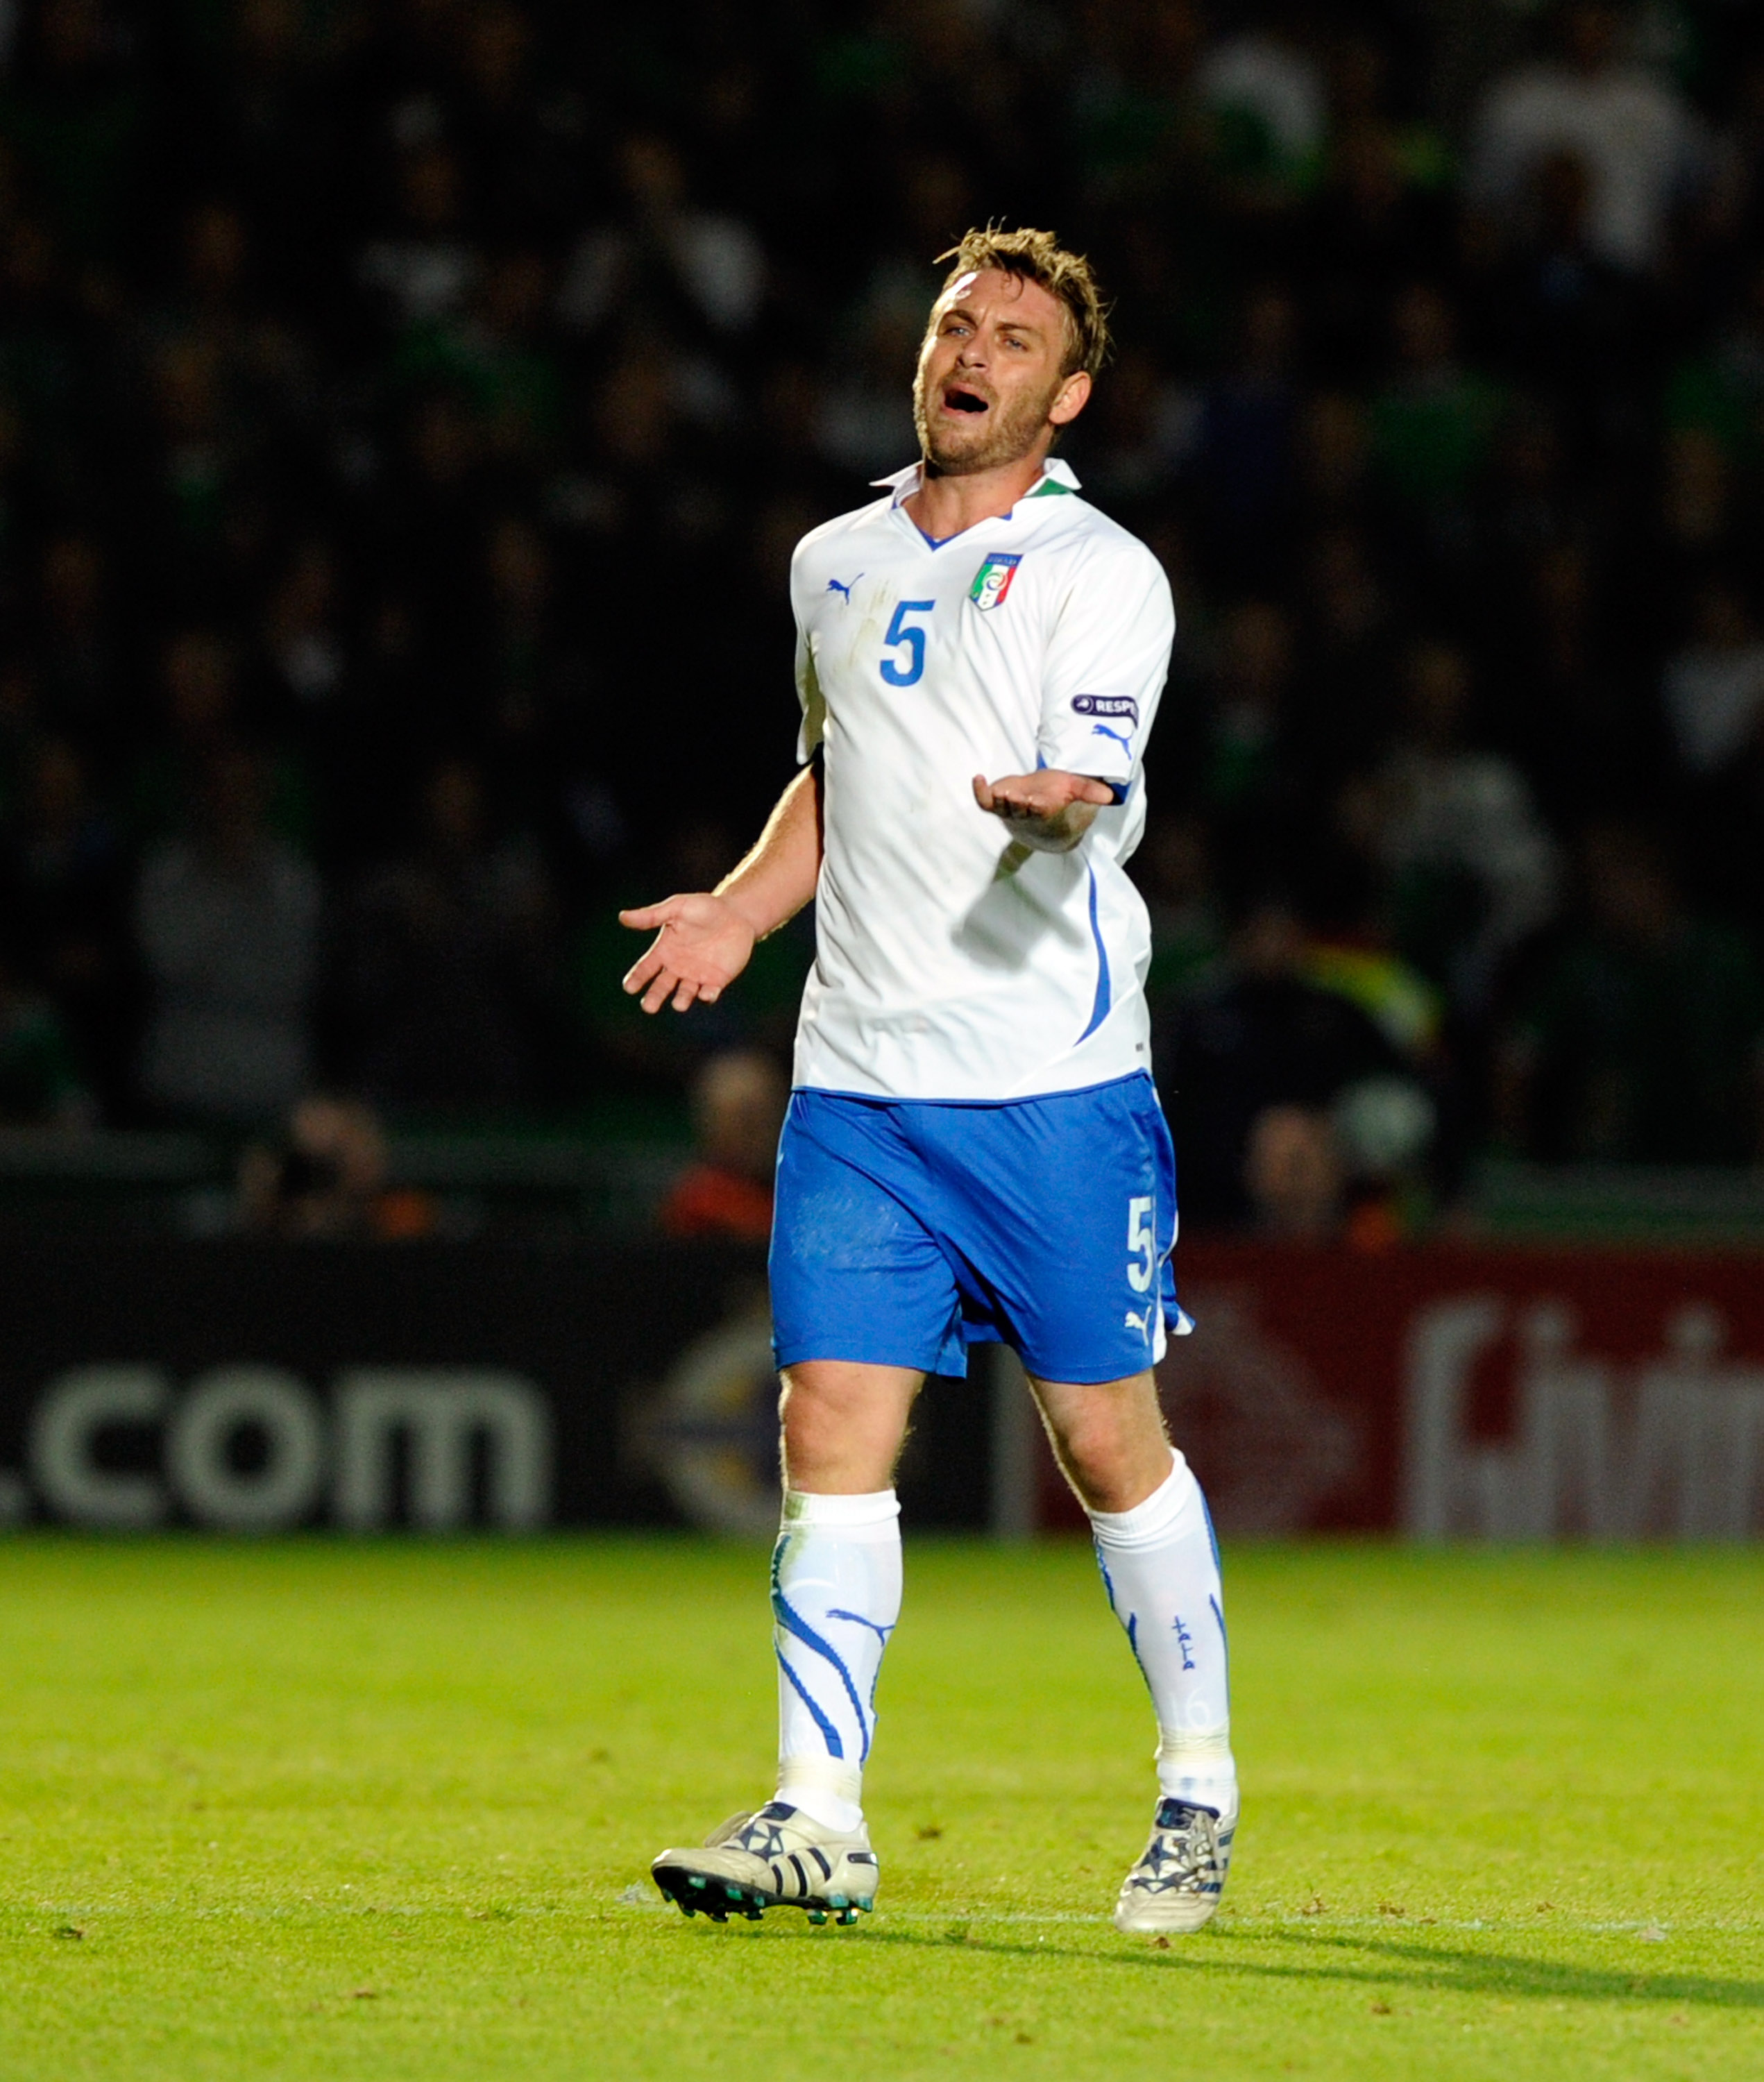 BELFAST, NORTHERN IRELAND - OCTOBER 08:  Daniele De Rossi of Italy reacts during the Euro 2012 group C qualifying match between Northern Ireland and Italy on October 8, 2010 in Belfast, Northern Ireland.  (Photo by Claudio Villa/Getty Images)